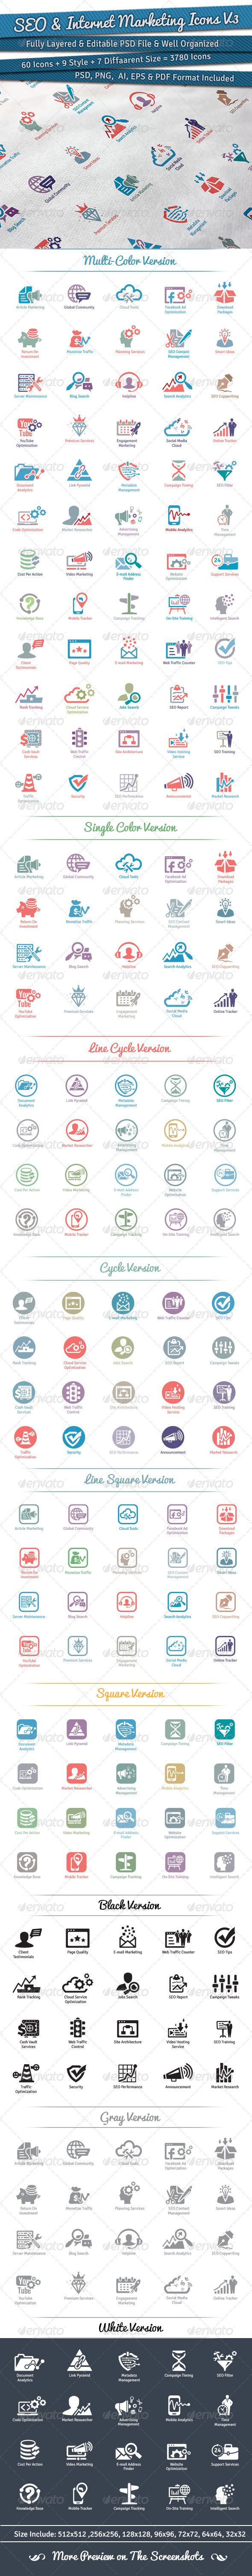 GraphicRiver 60 SEO & Internet Marketing Icons Volume 3 5816096